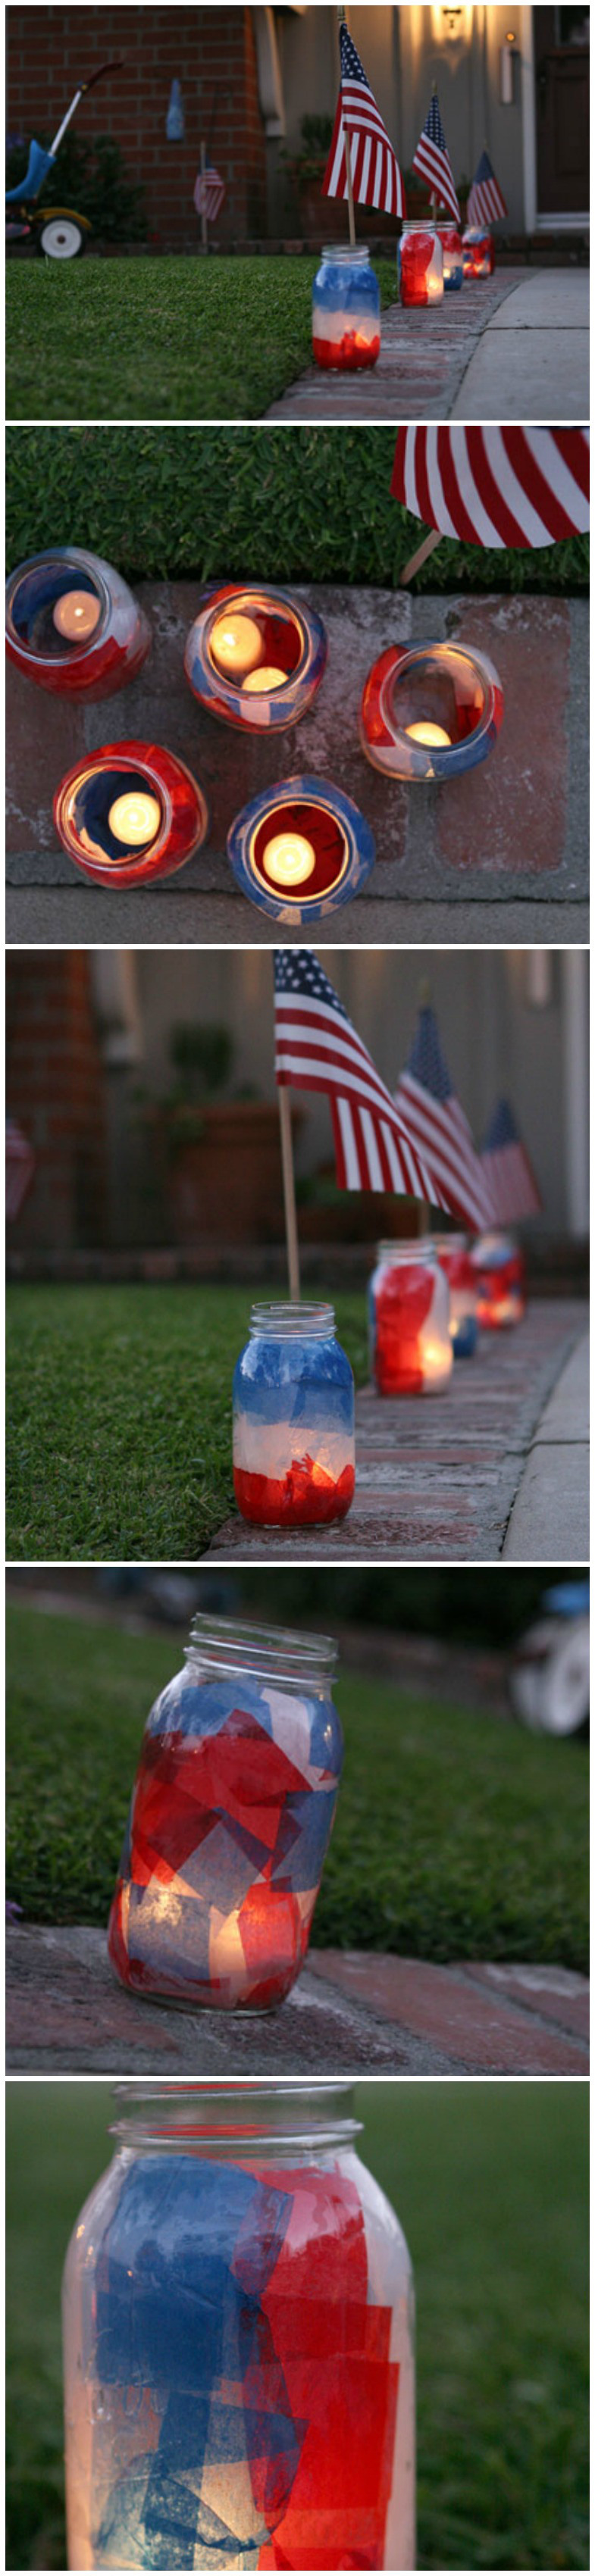 Diy patriotic mason jar luminaries jar craft and patriotic crafts